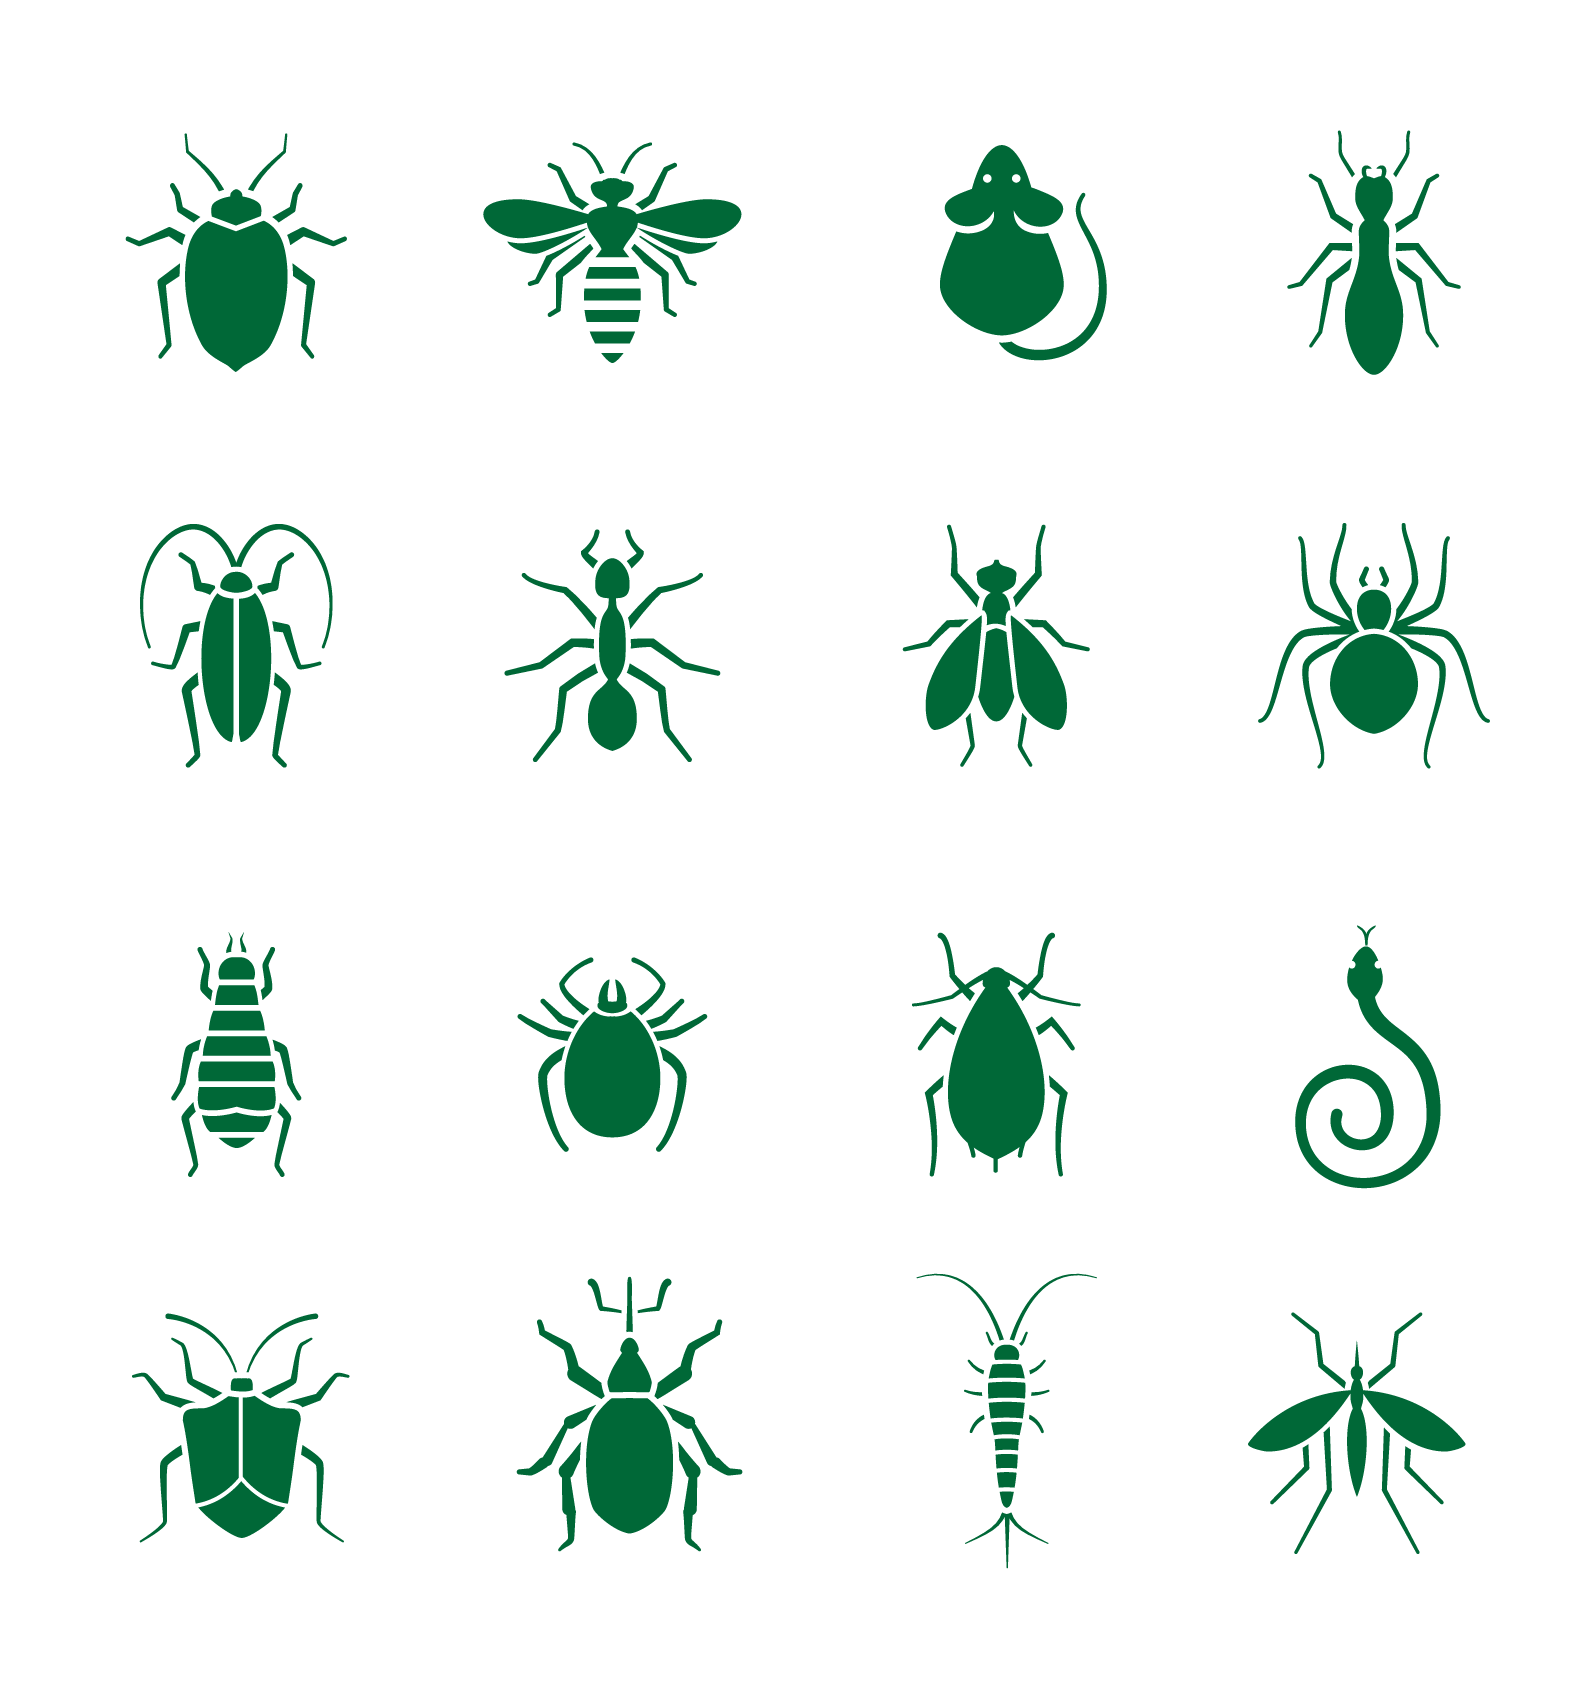 Insects-01